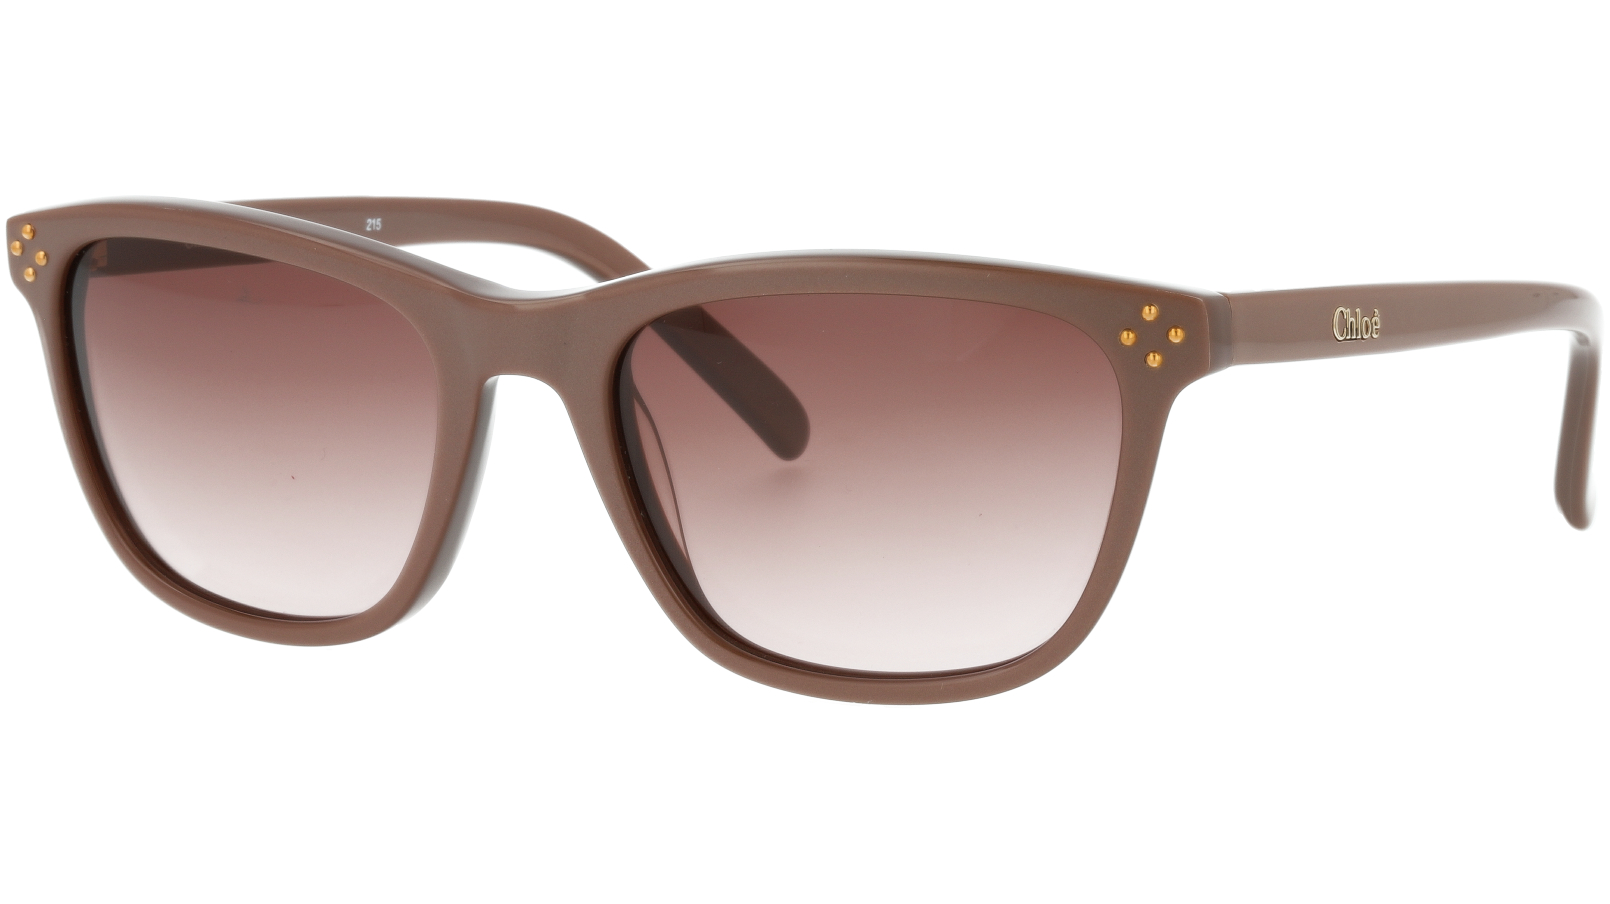 CHLOE CE3604S 210 49 Brown Square Sunglasses